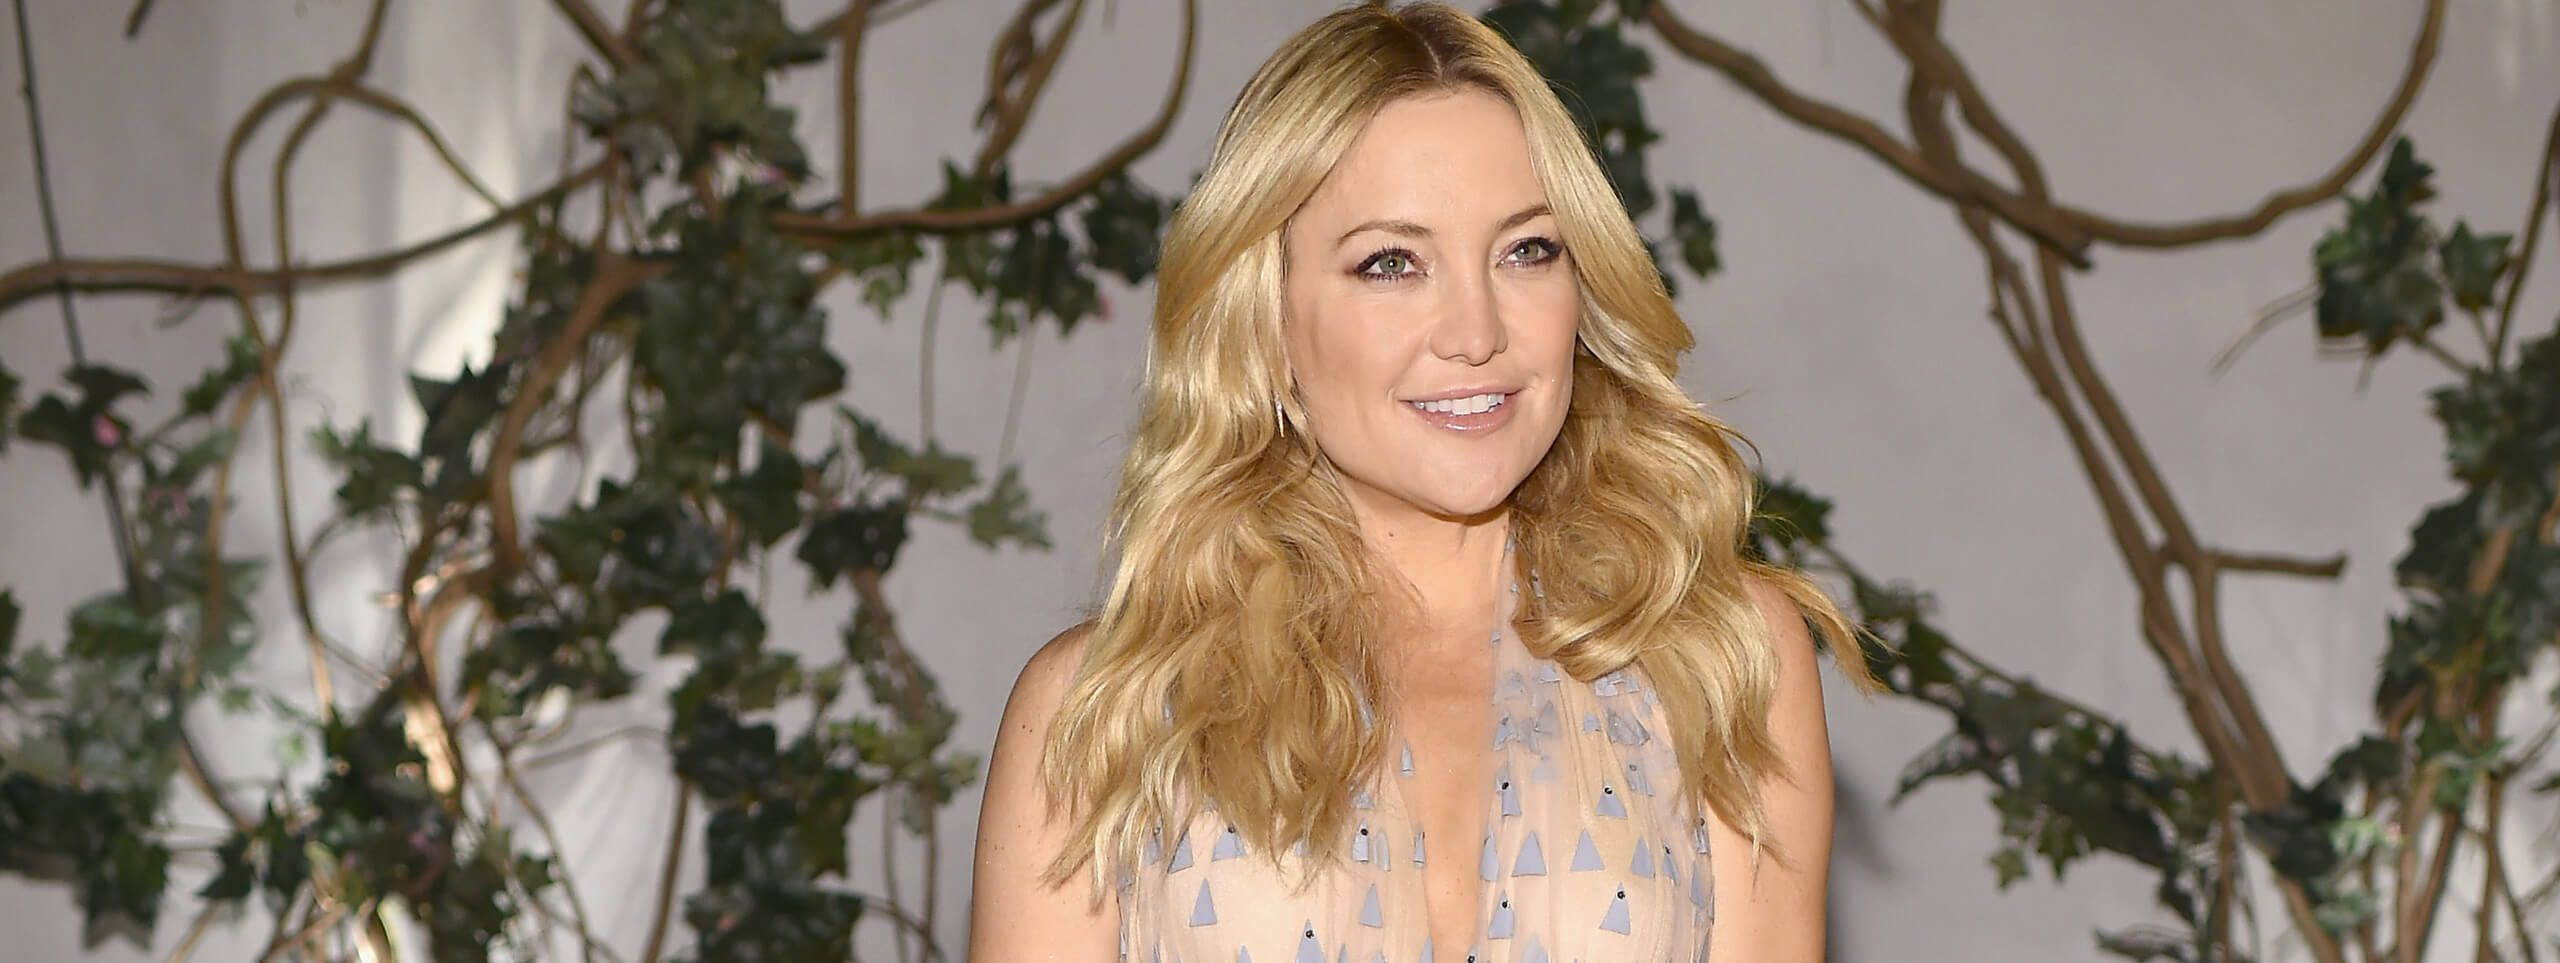 Kate Hudson color de pelo rubio